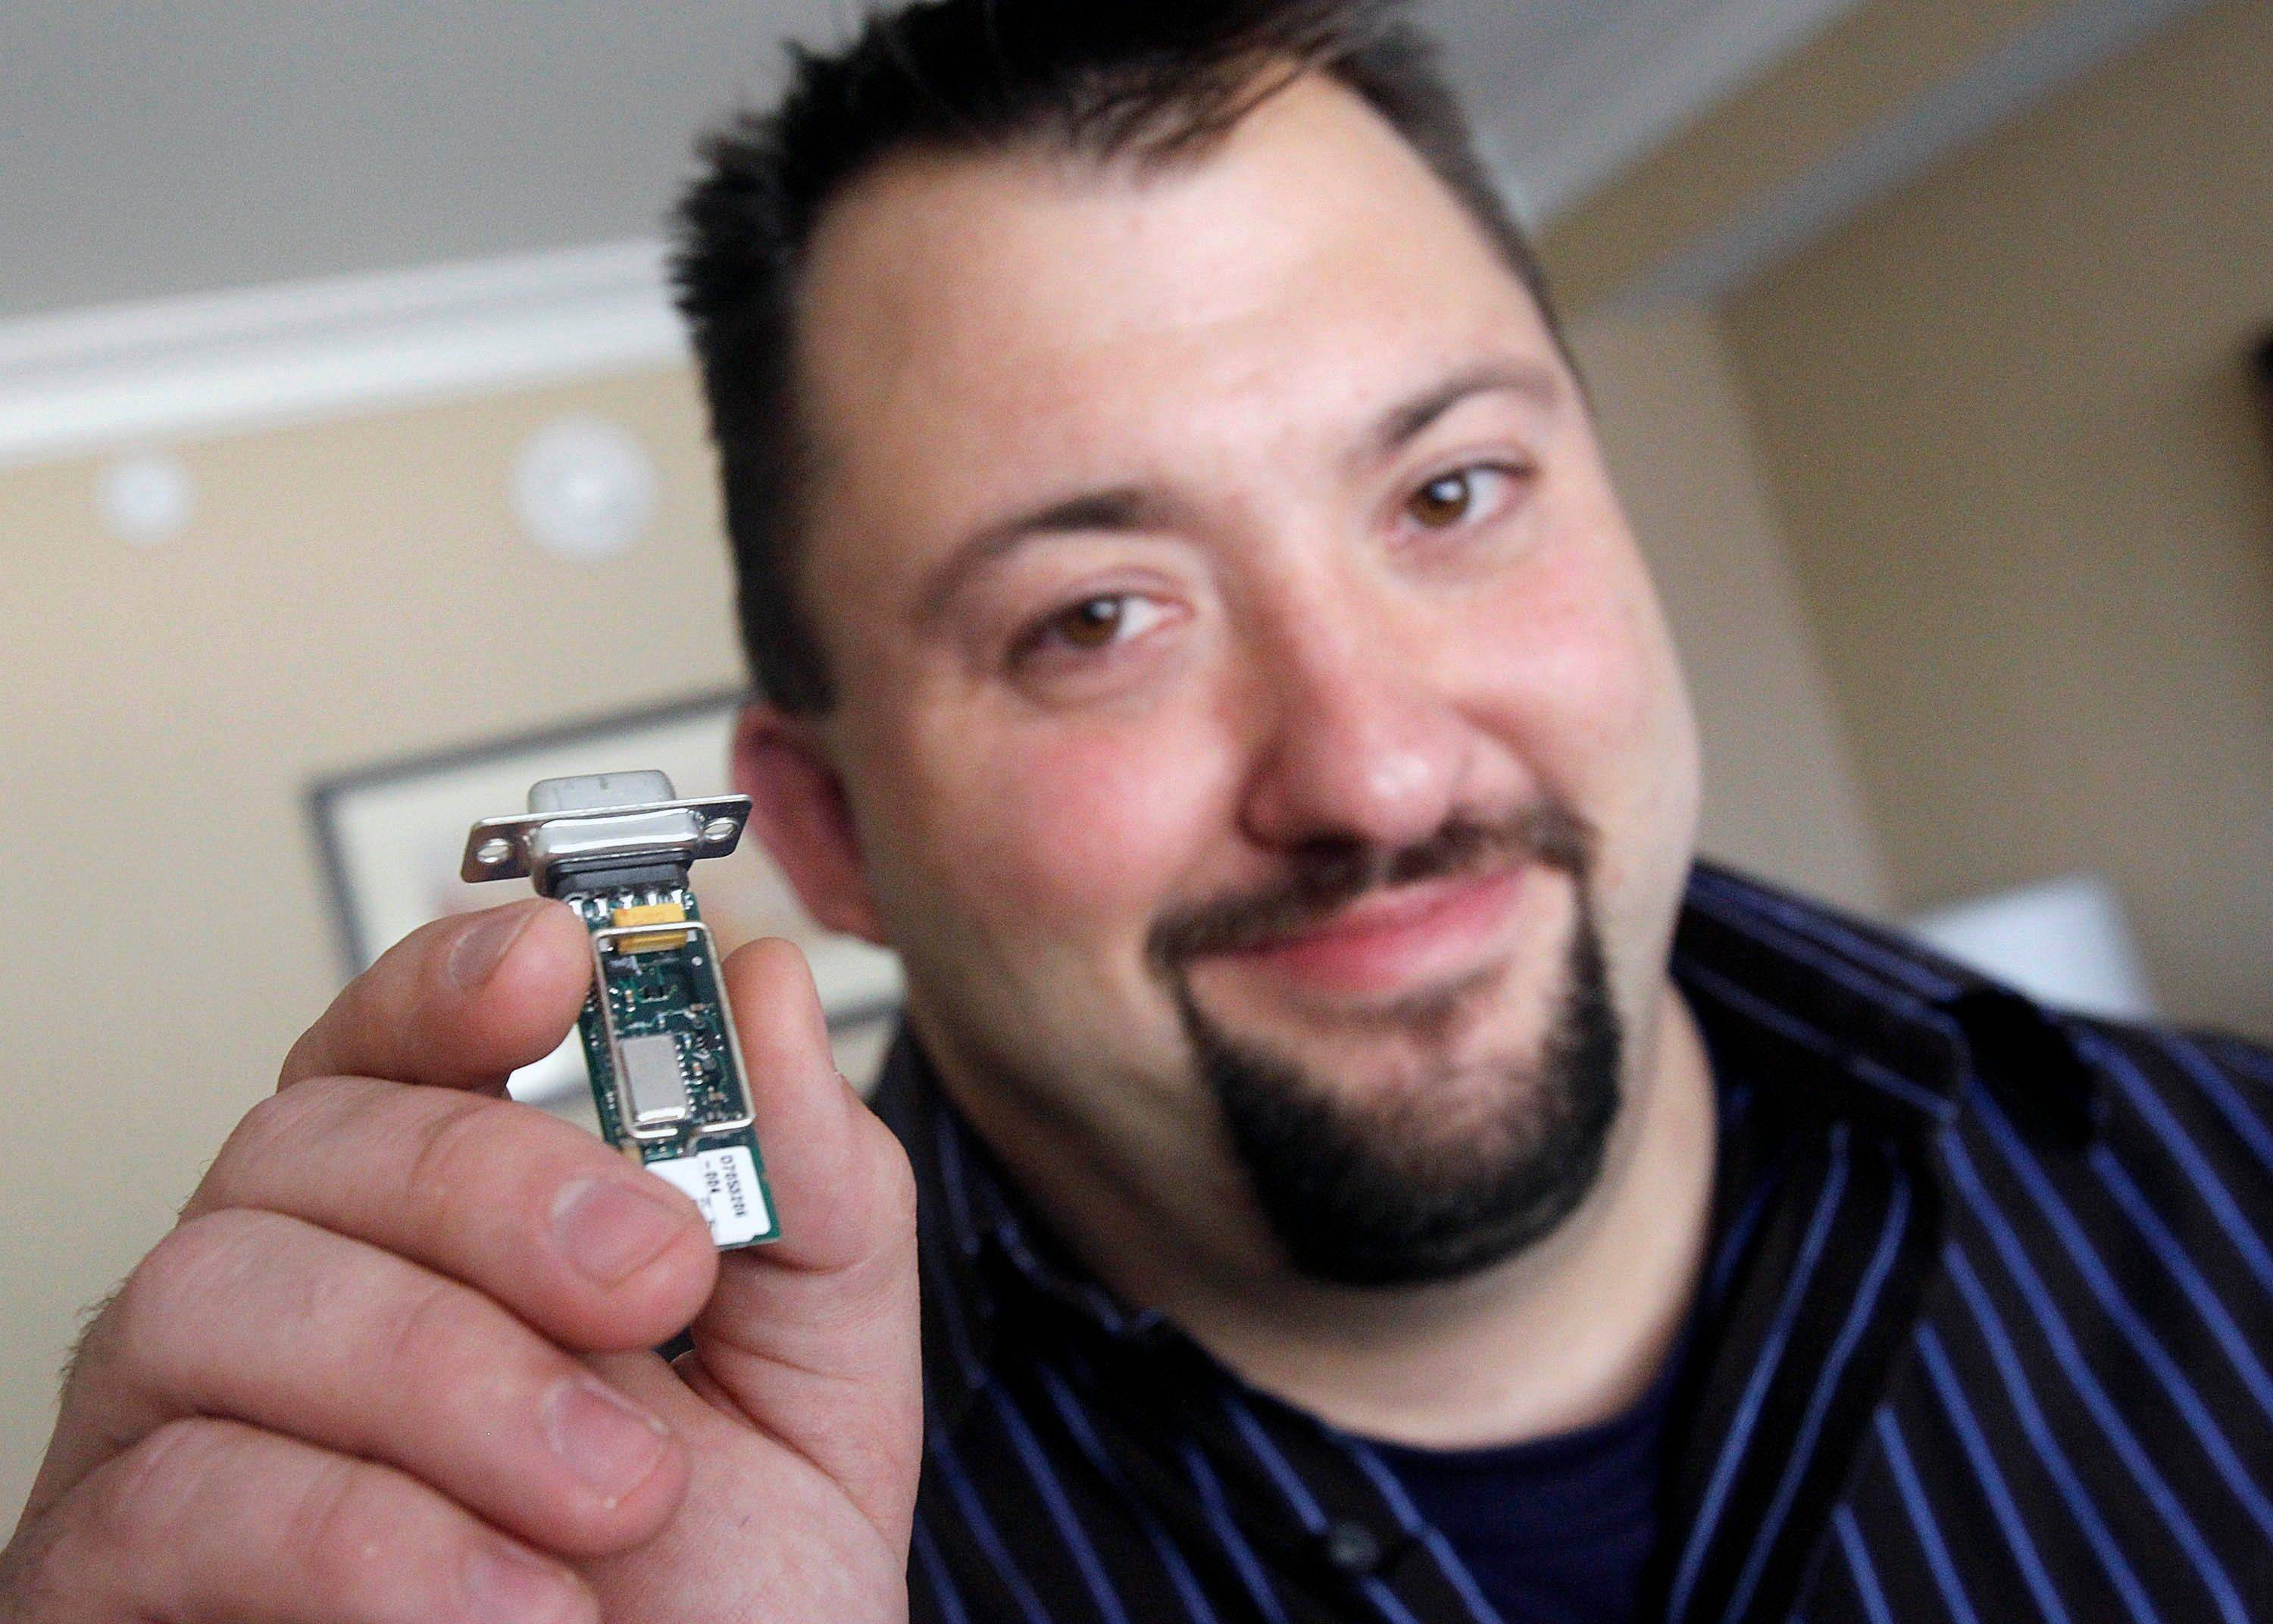 Jay Radcliffe displays a radio device he uses to perform an attack on an insulin pump by taking control of the device wirelessly.